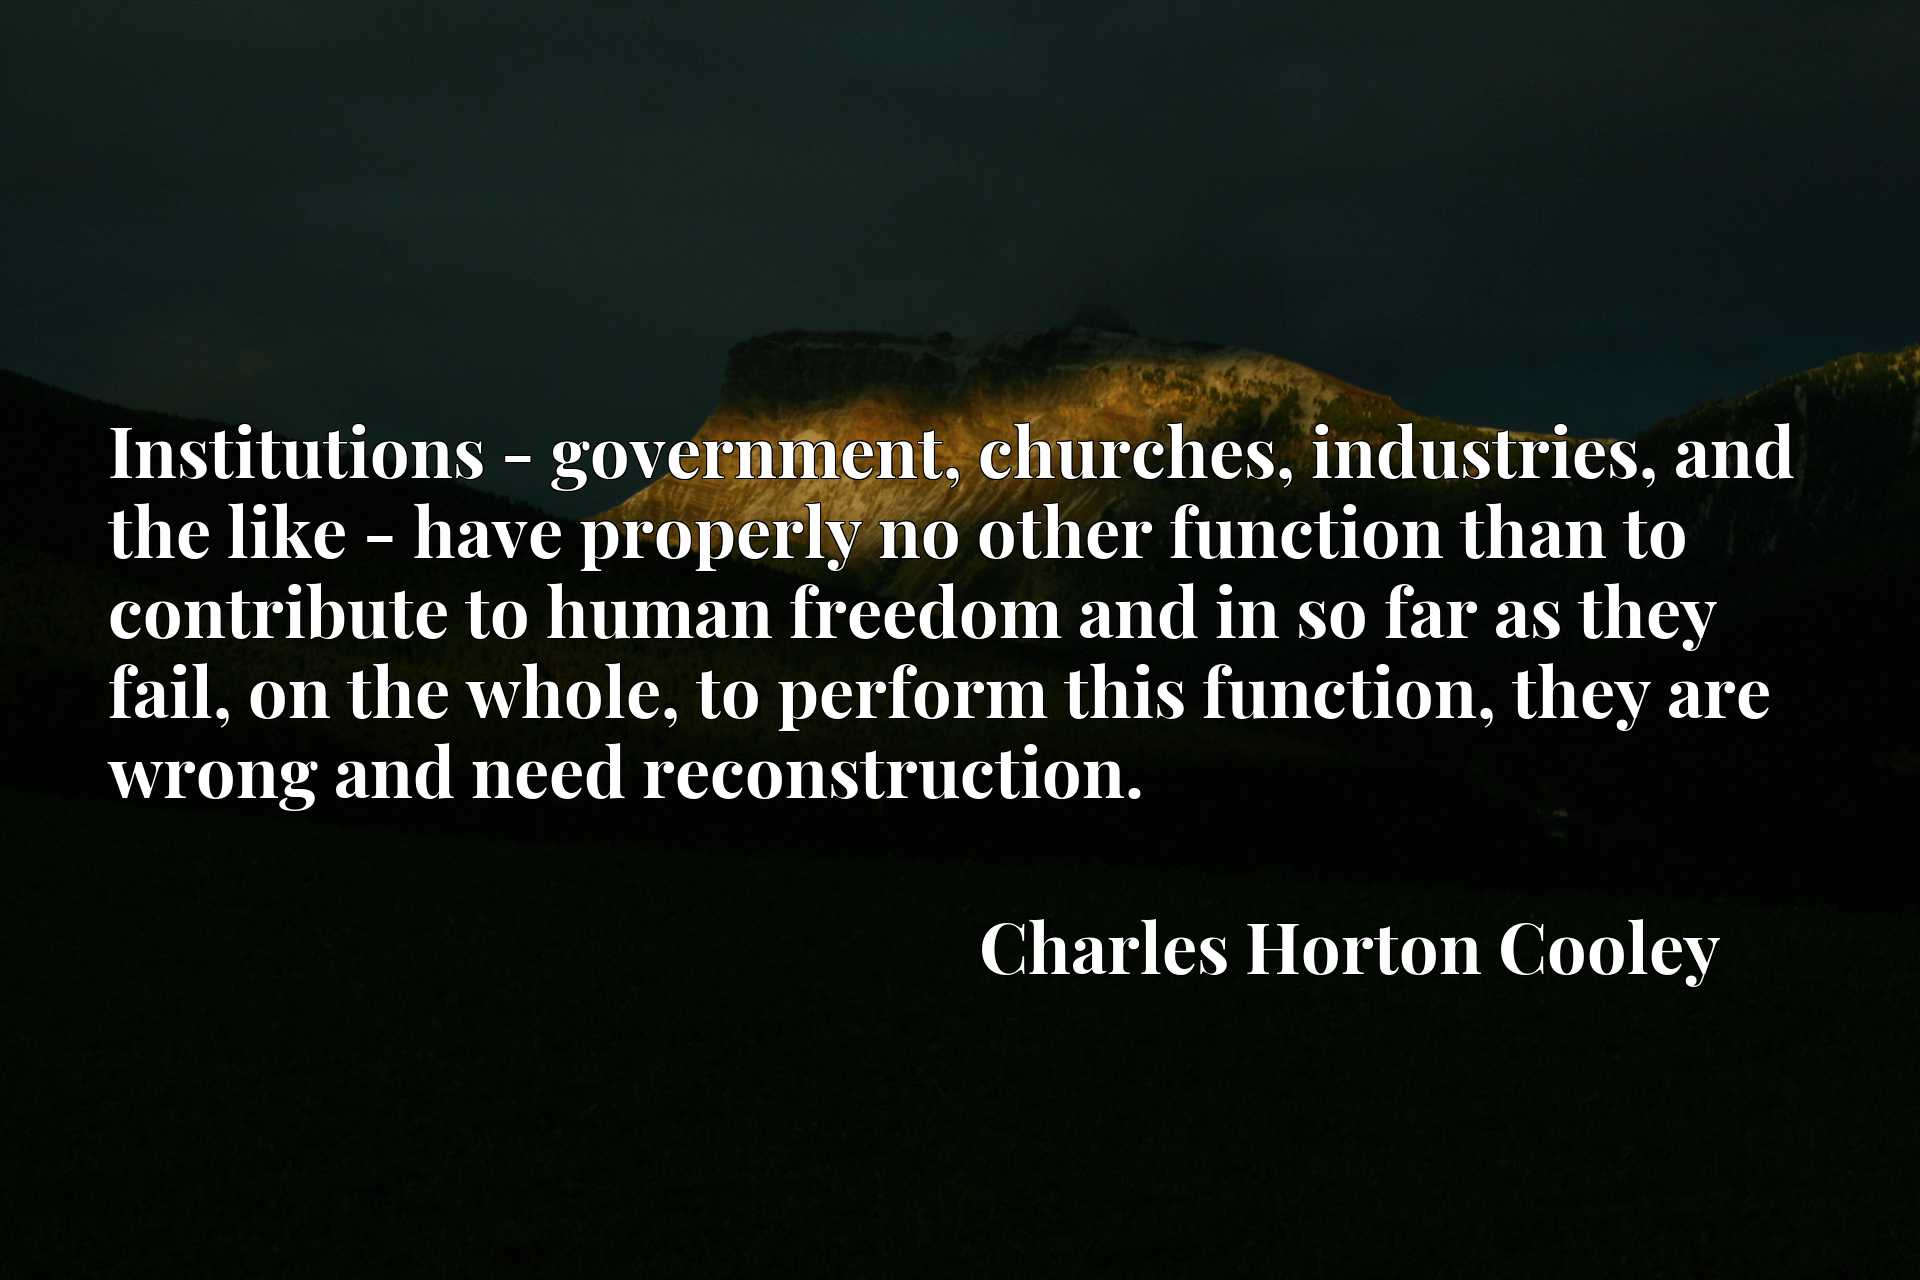 Institutions - government, churches, industries, and the like - have properly no other function than to contribute to human freedom and in so far as they fail, on the whole, to perform this function, they are wrong and need reconstruction.